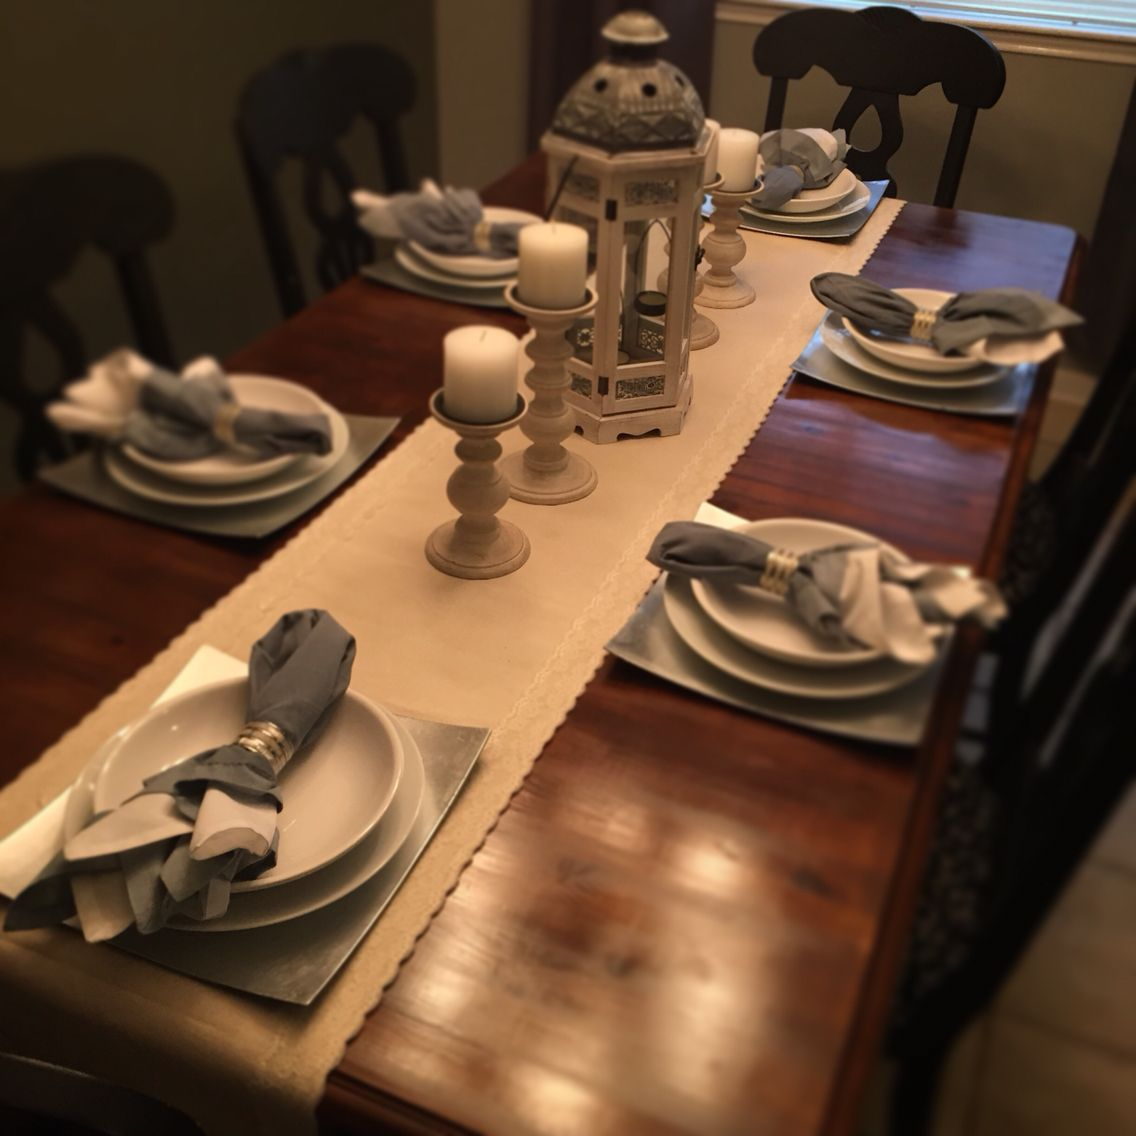 Formal Dining Room Table Decor Home Sewn Runner Charger Plates